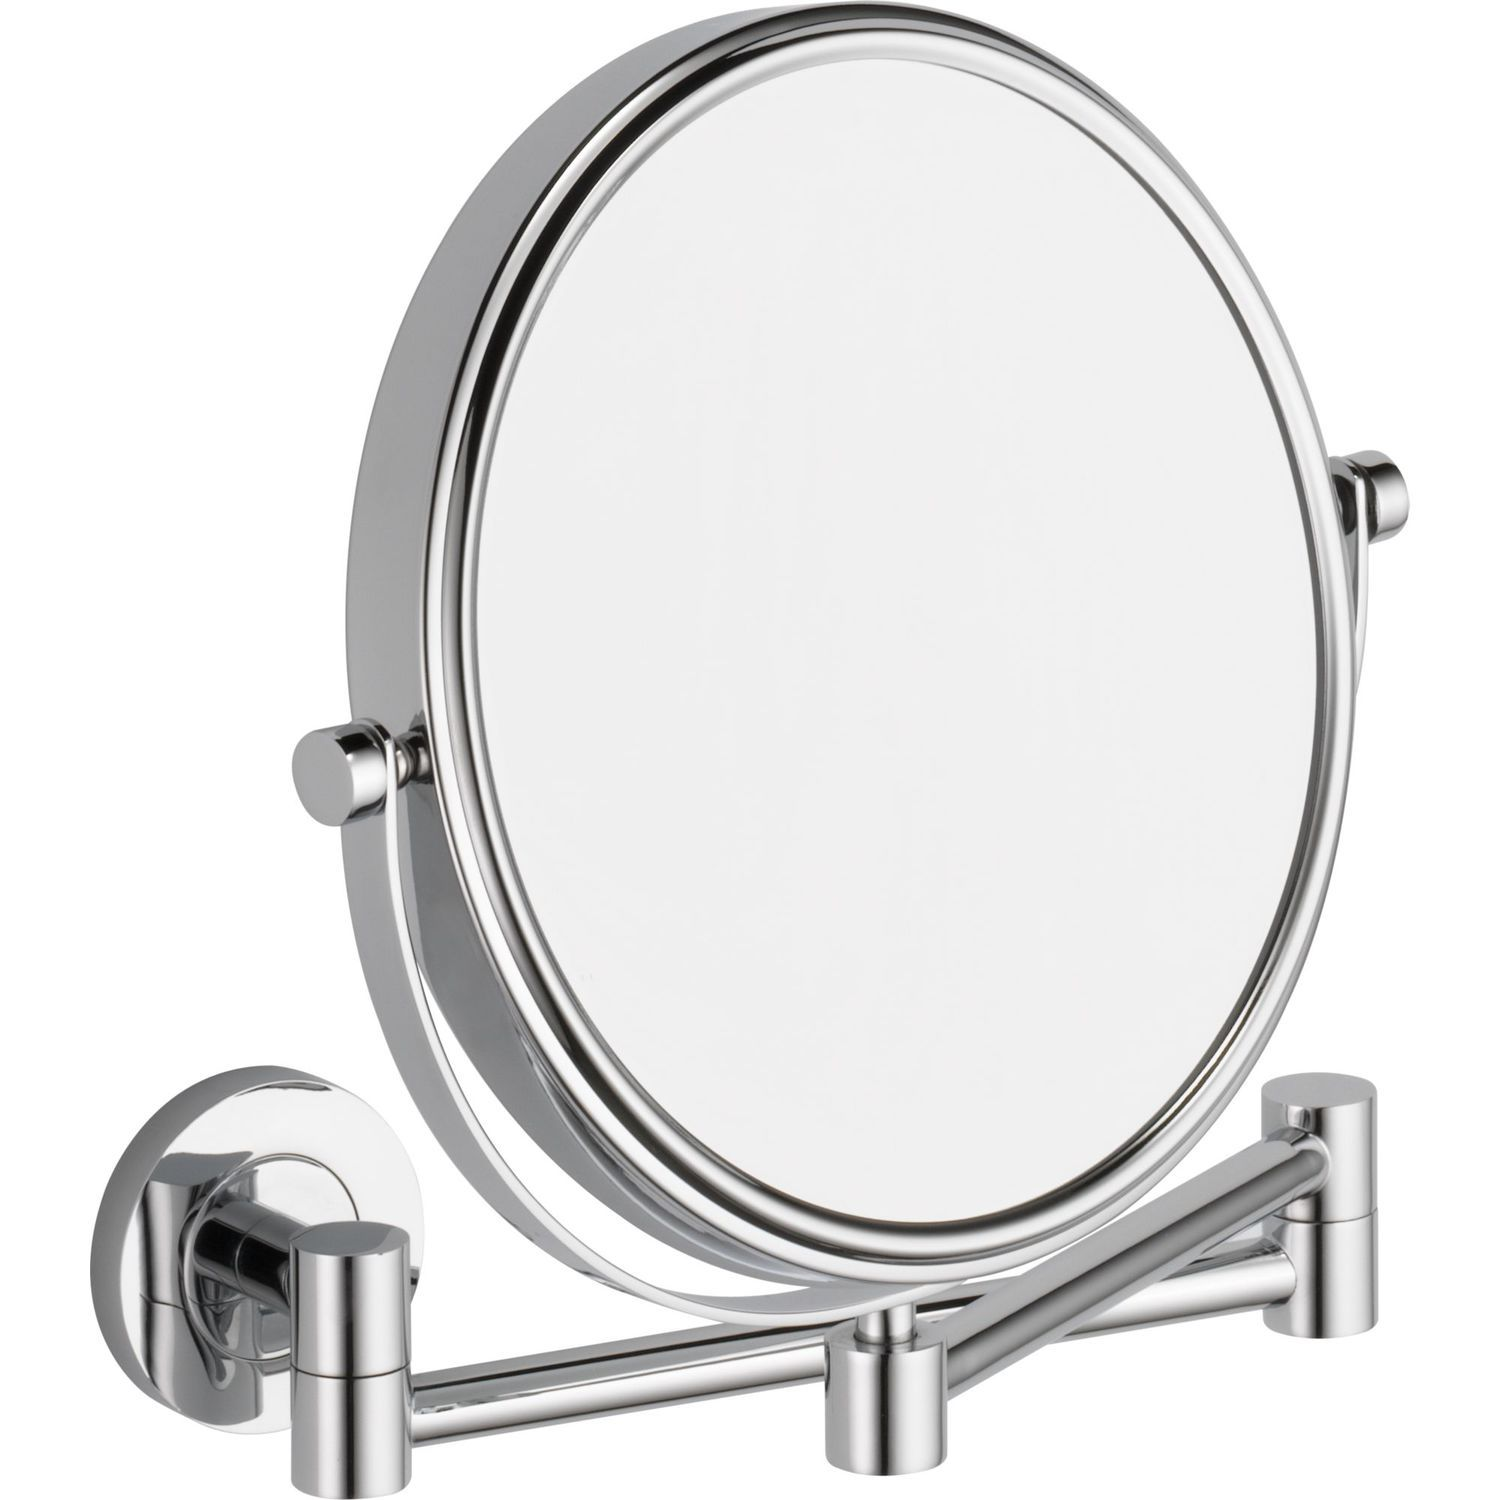 Wall-mounted bathroom mirror / magnifying / double-sided ...